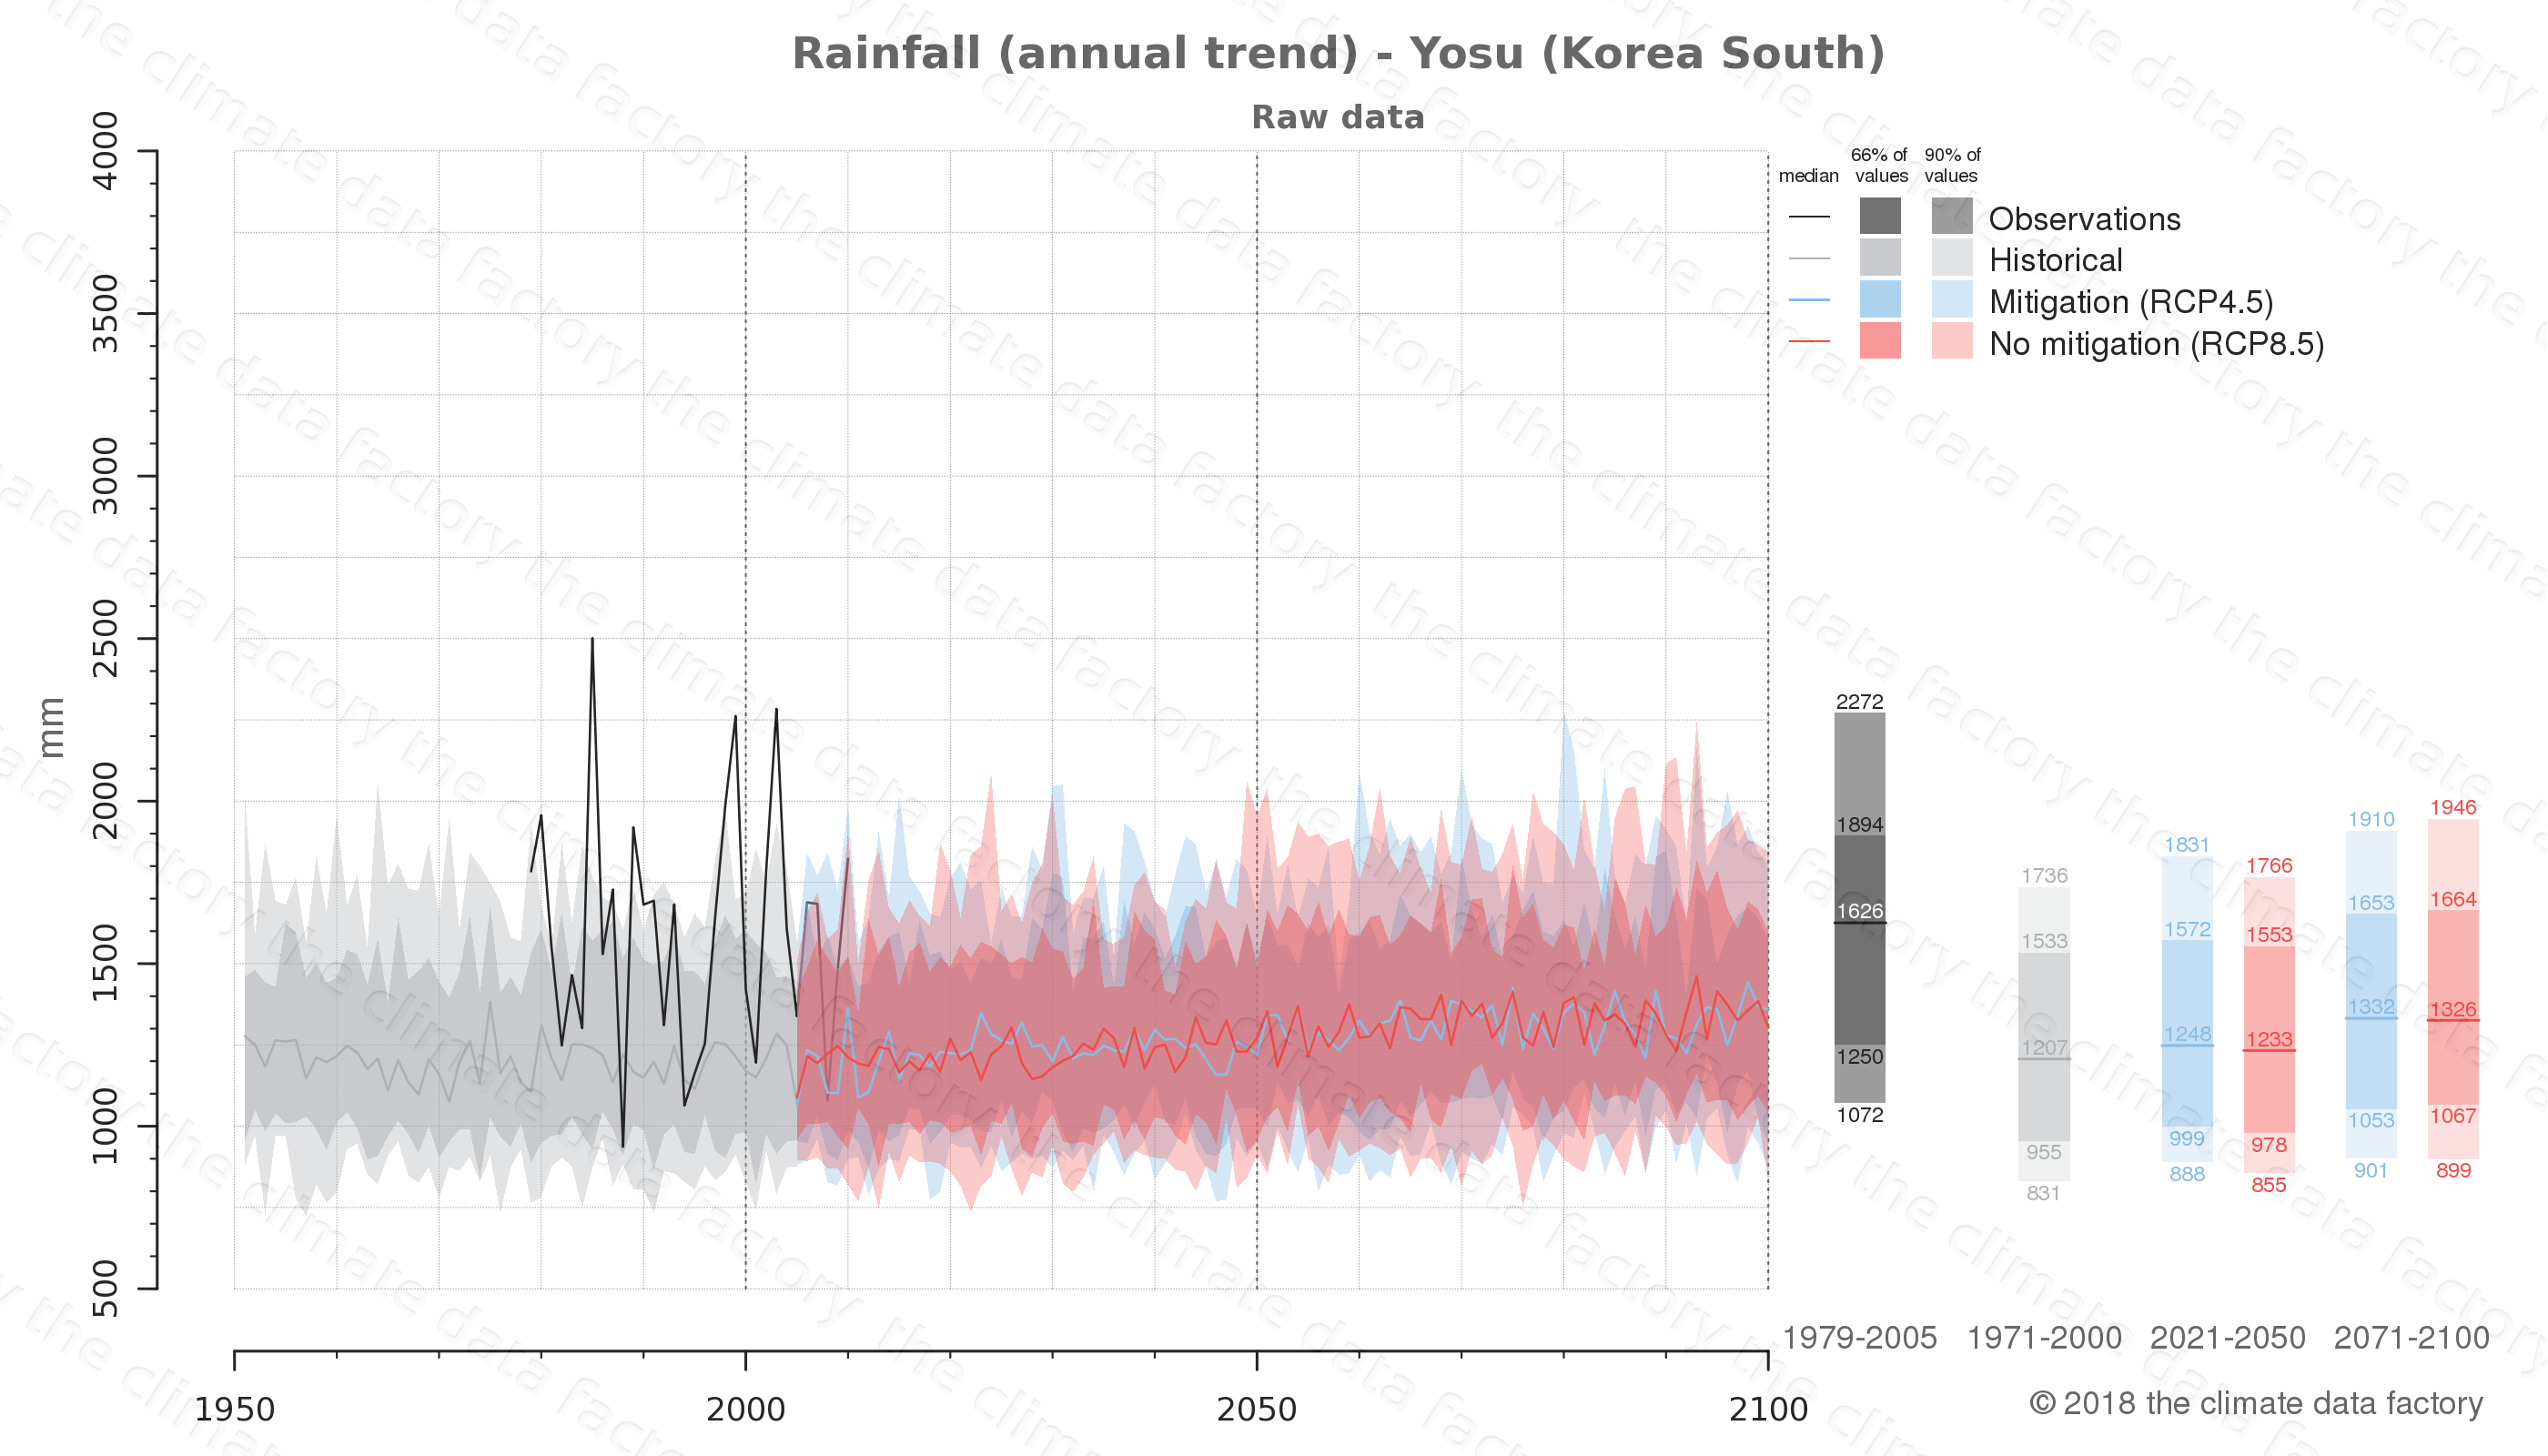 climate change data policy adaptation climate graph city data rainfall yosu south korea